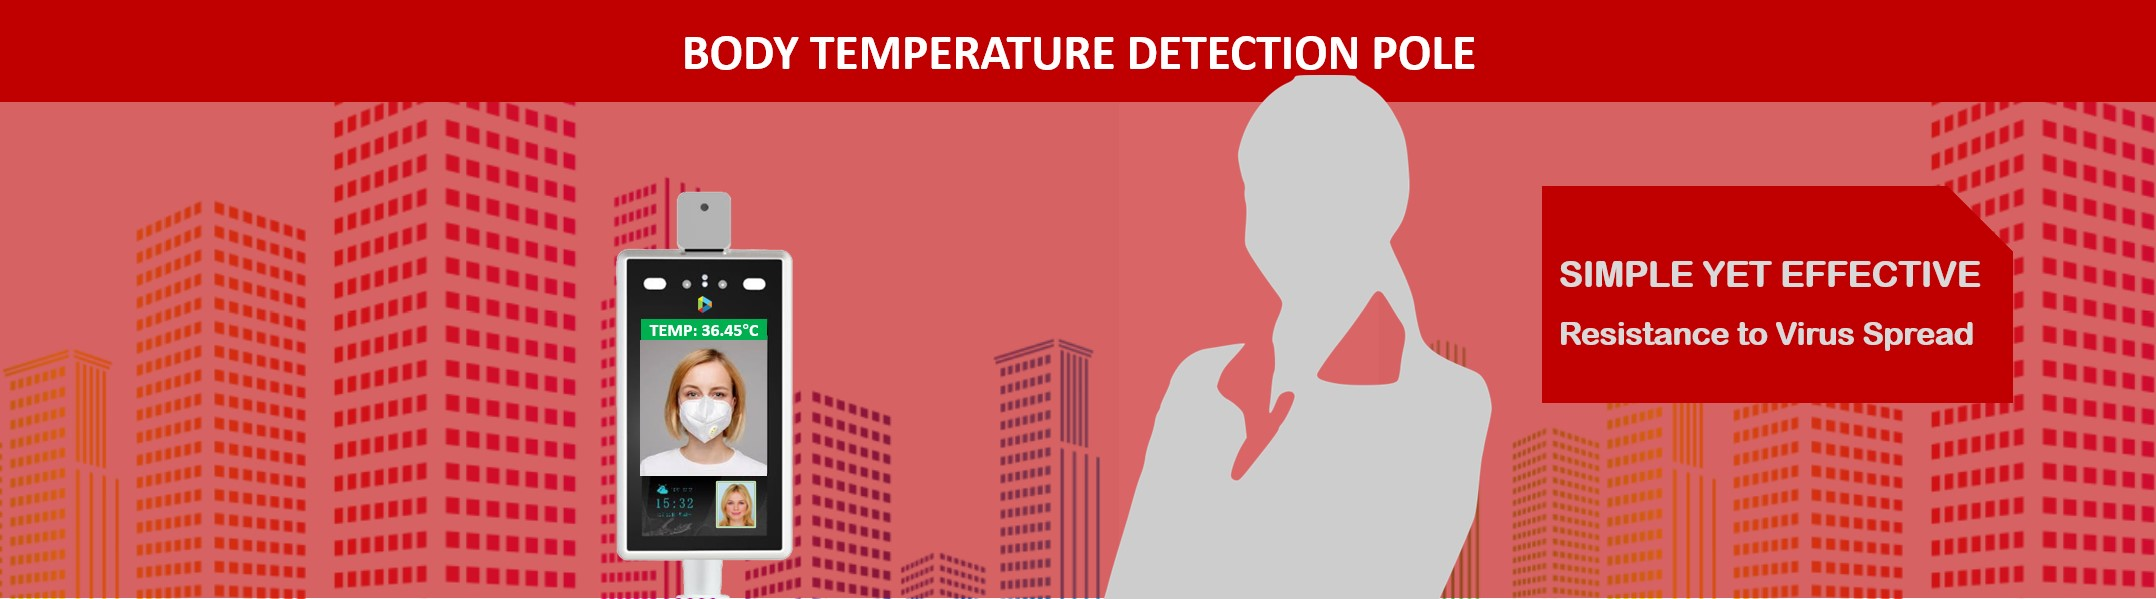 Body Temperature Detection Pole